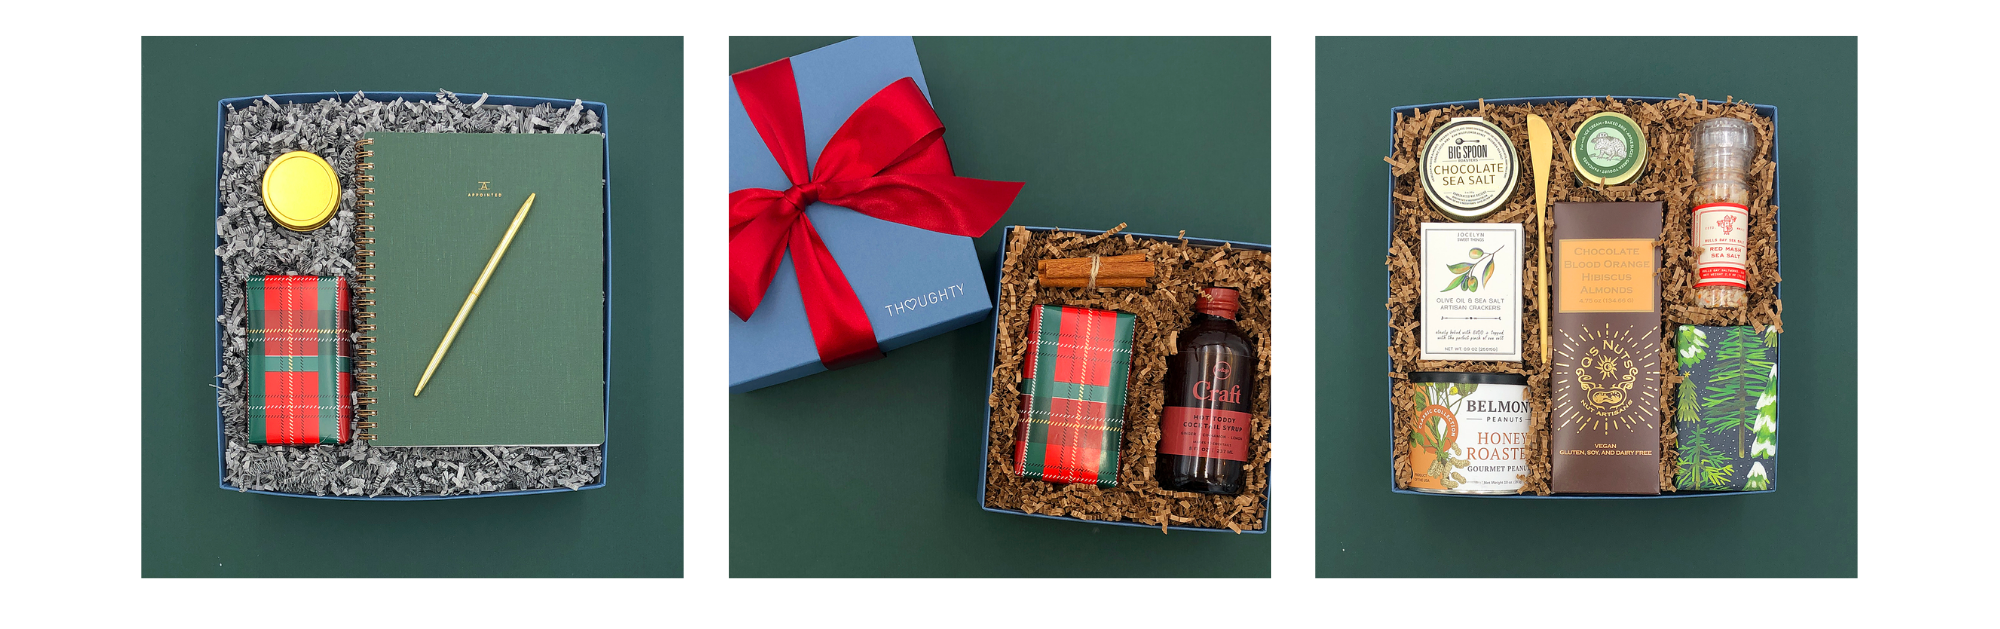 Holiday corporate gift catalog